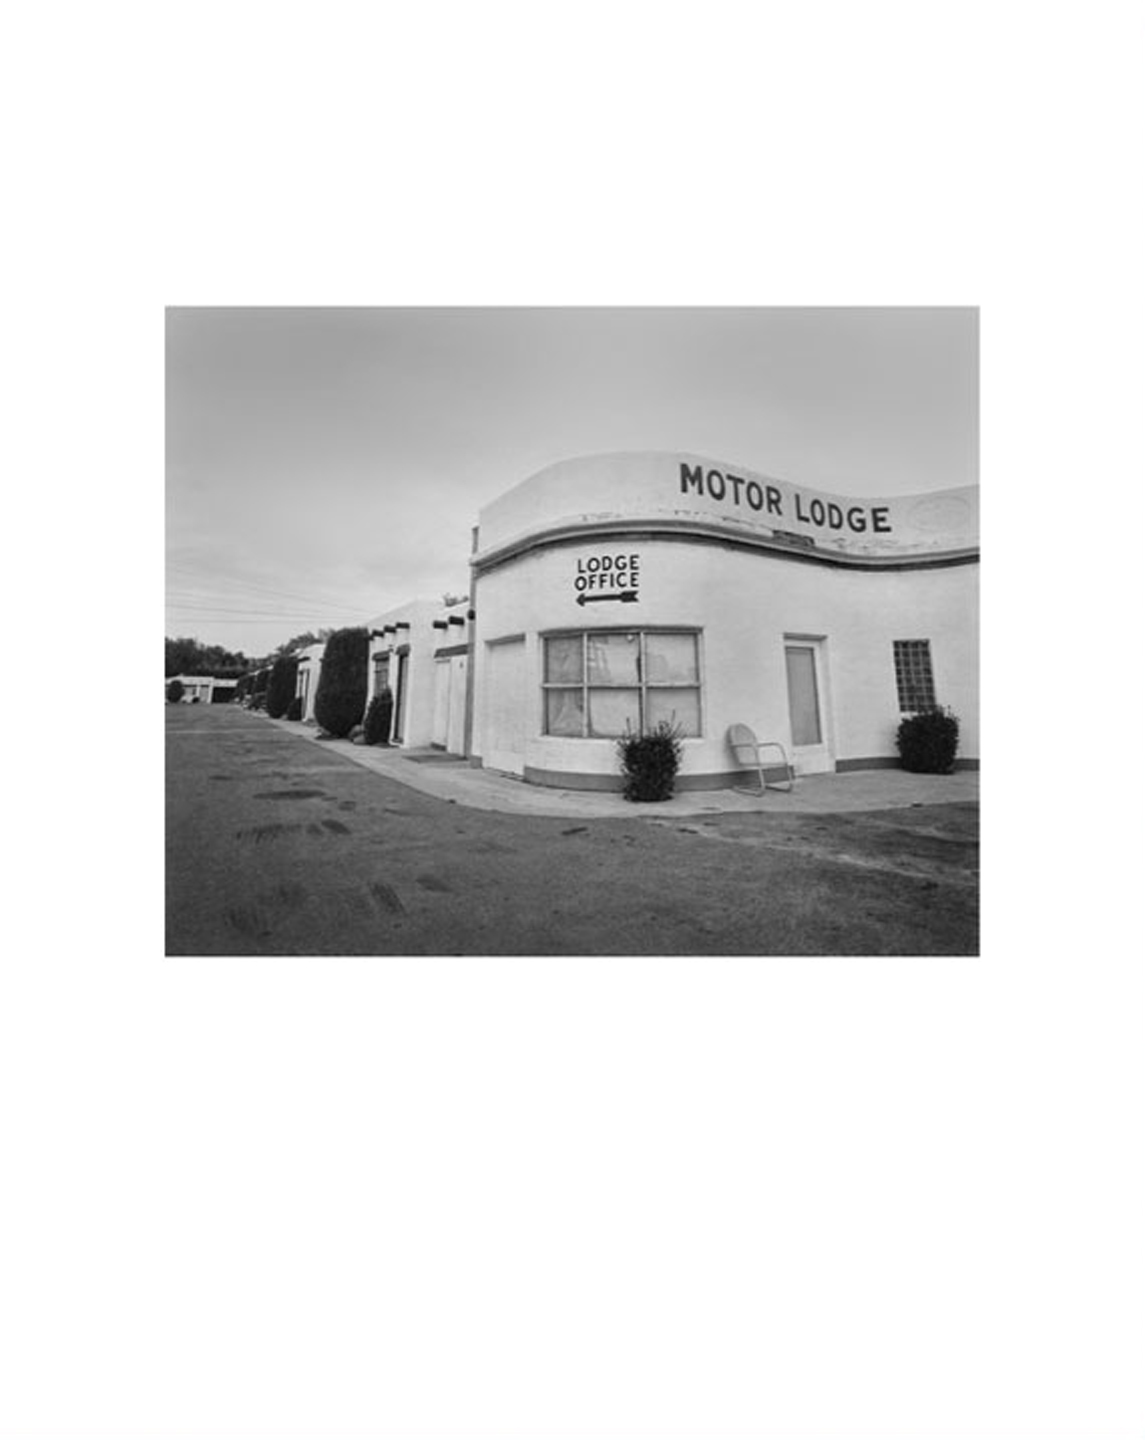 "NZ Library #1: John Schott: Route 66, Special Limited Edition (with Gelatin Silver Contact Print ""Untitled"" from the Series ""Route 66 Motels,"" El Pueblo Court Motel Office with Pay Telephone) (NZ Library - Set One, Volume Six)"